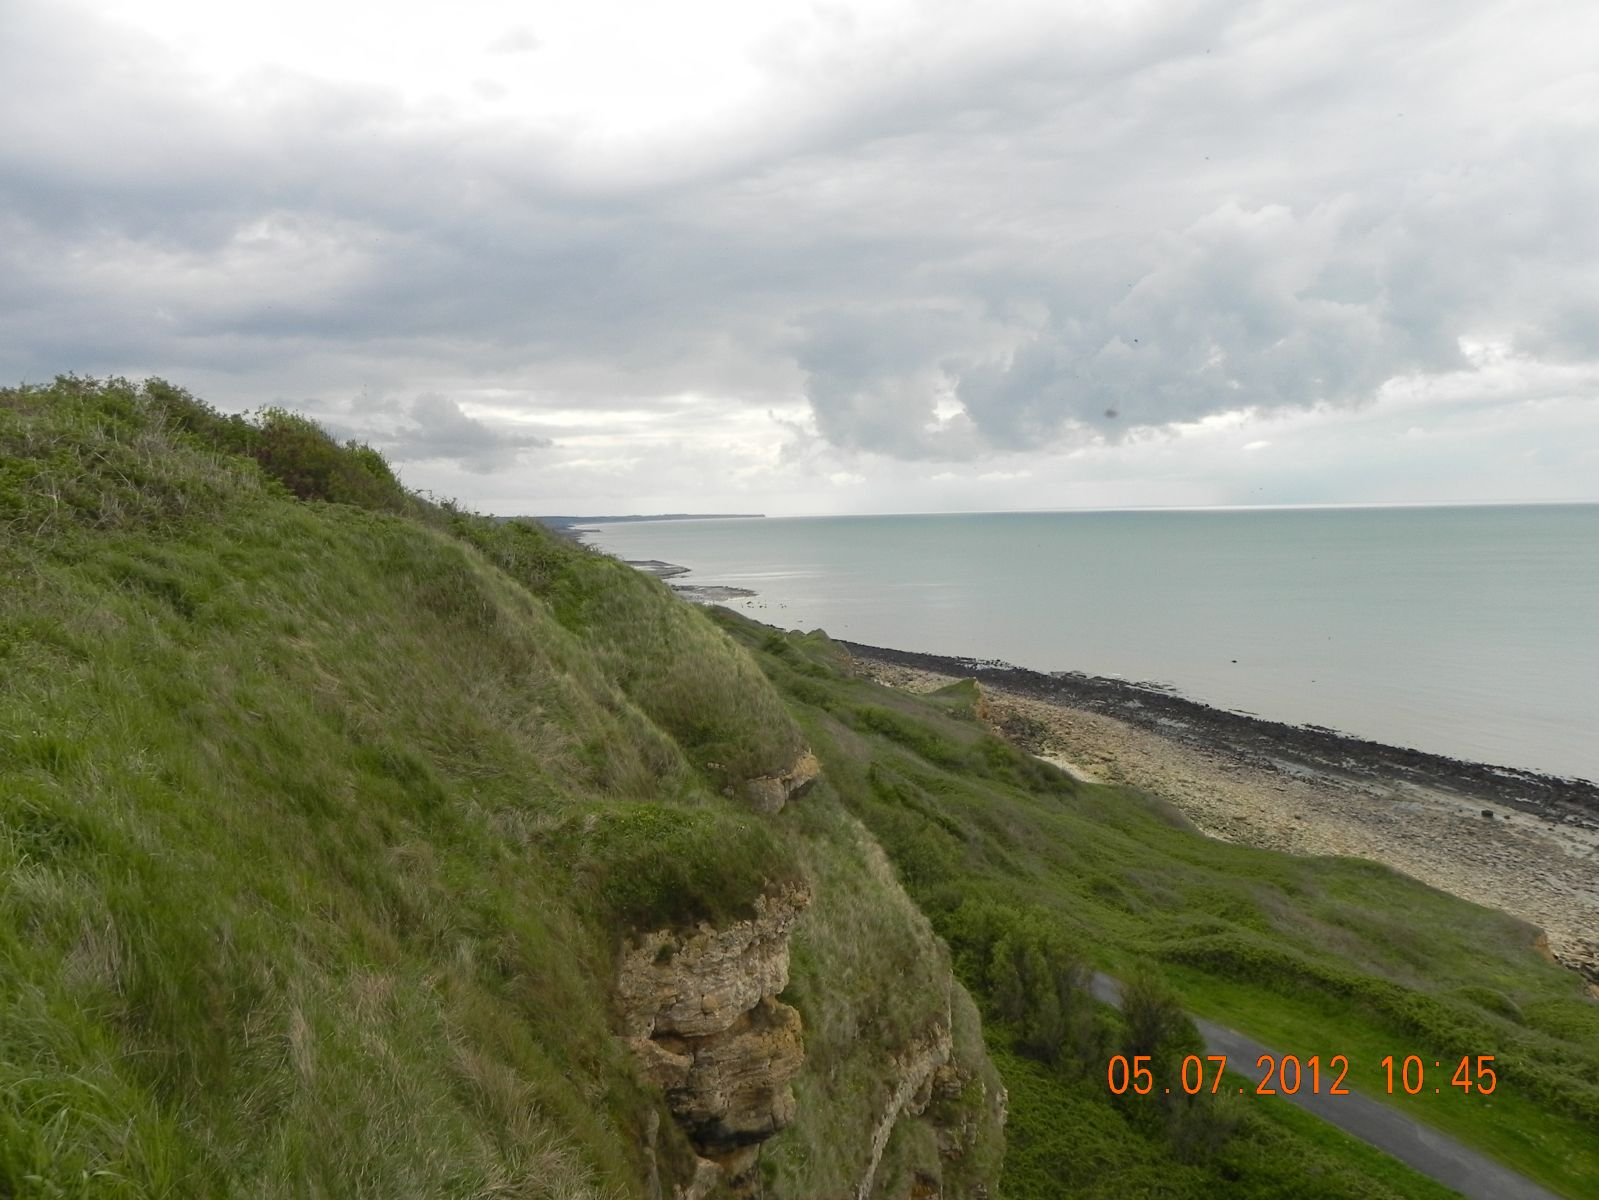 View from Arromanches Looking South Towards Omaha